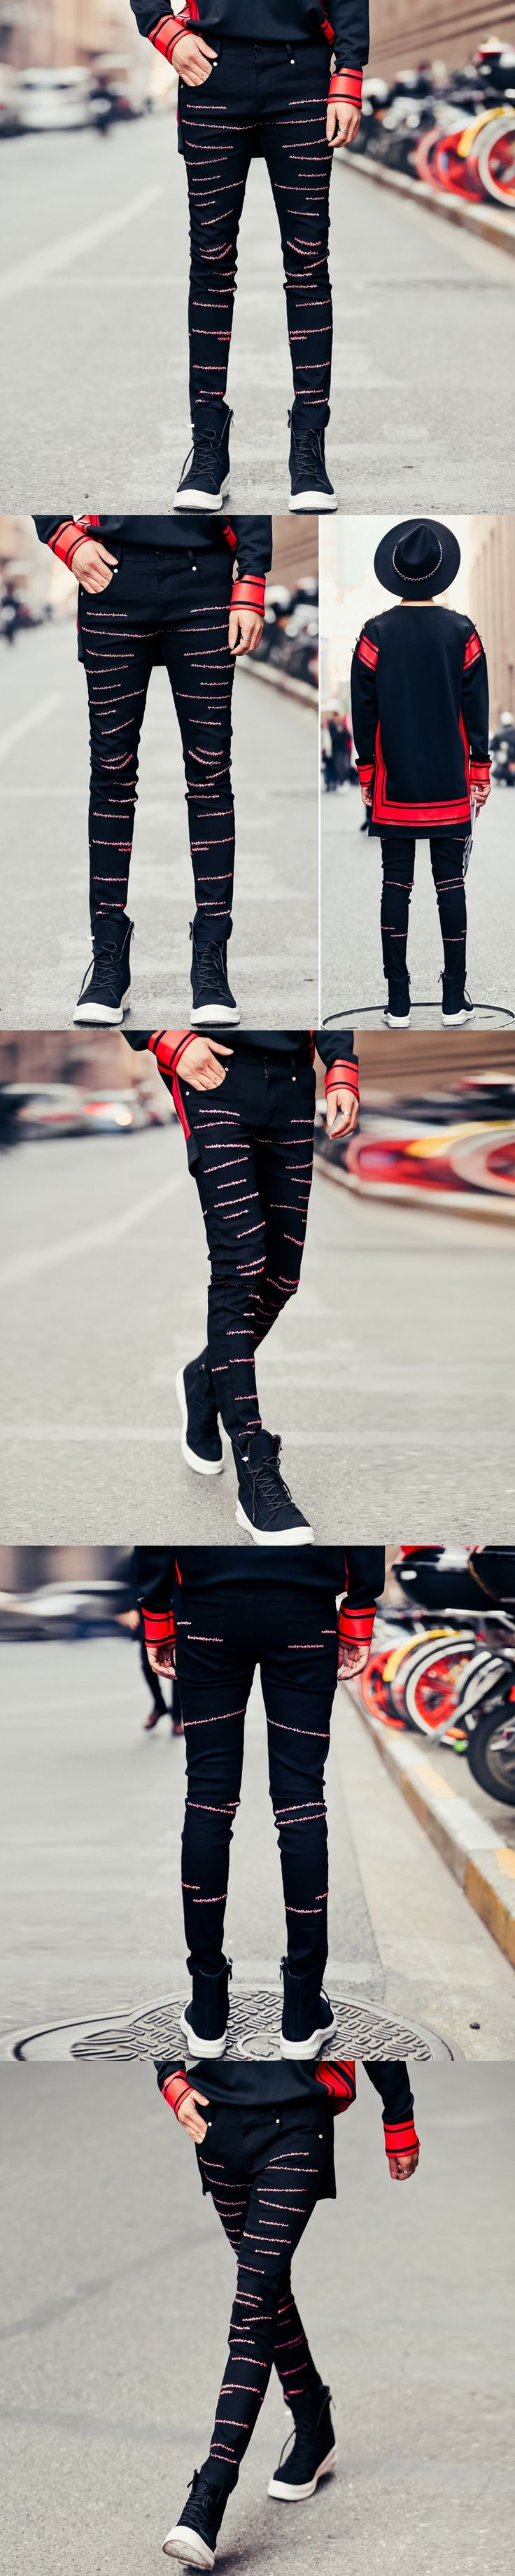 New 2017 Men's Clothing Personalized embroidery jeans Korean fashion night club youth trousers little pants singer costumes